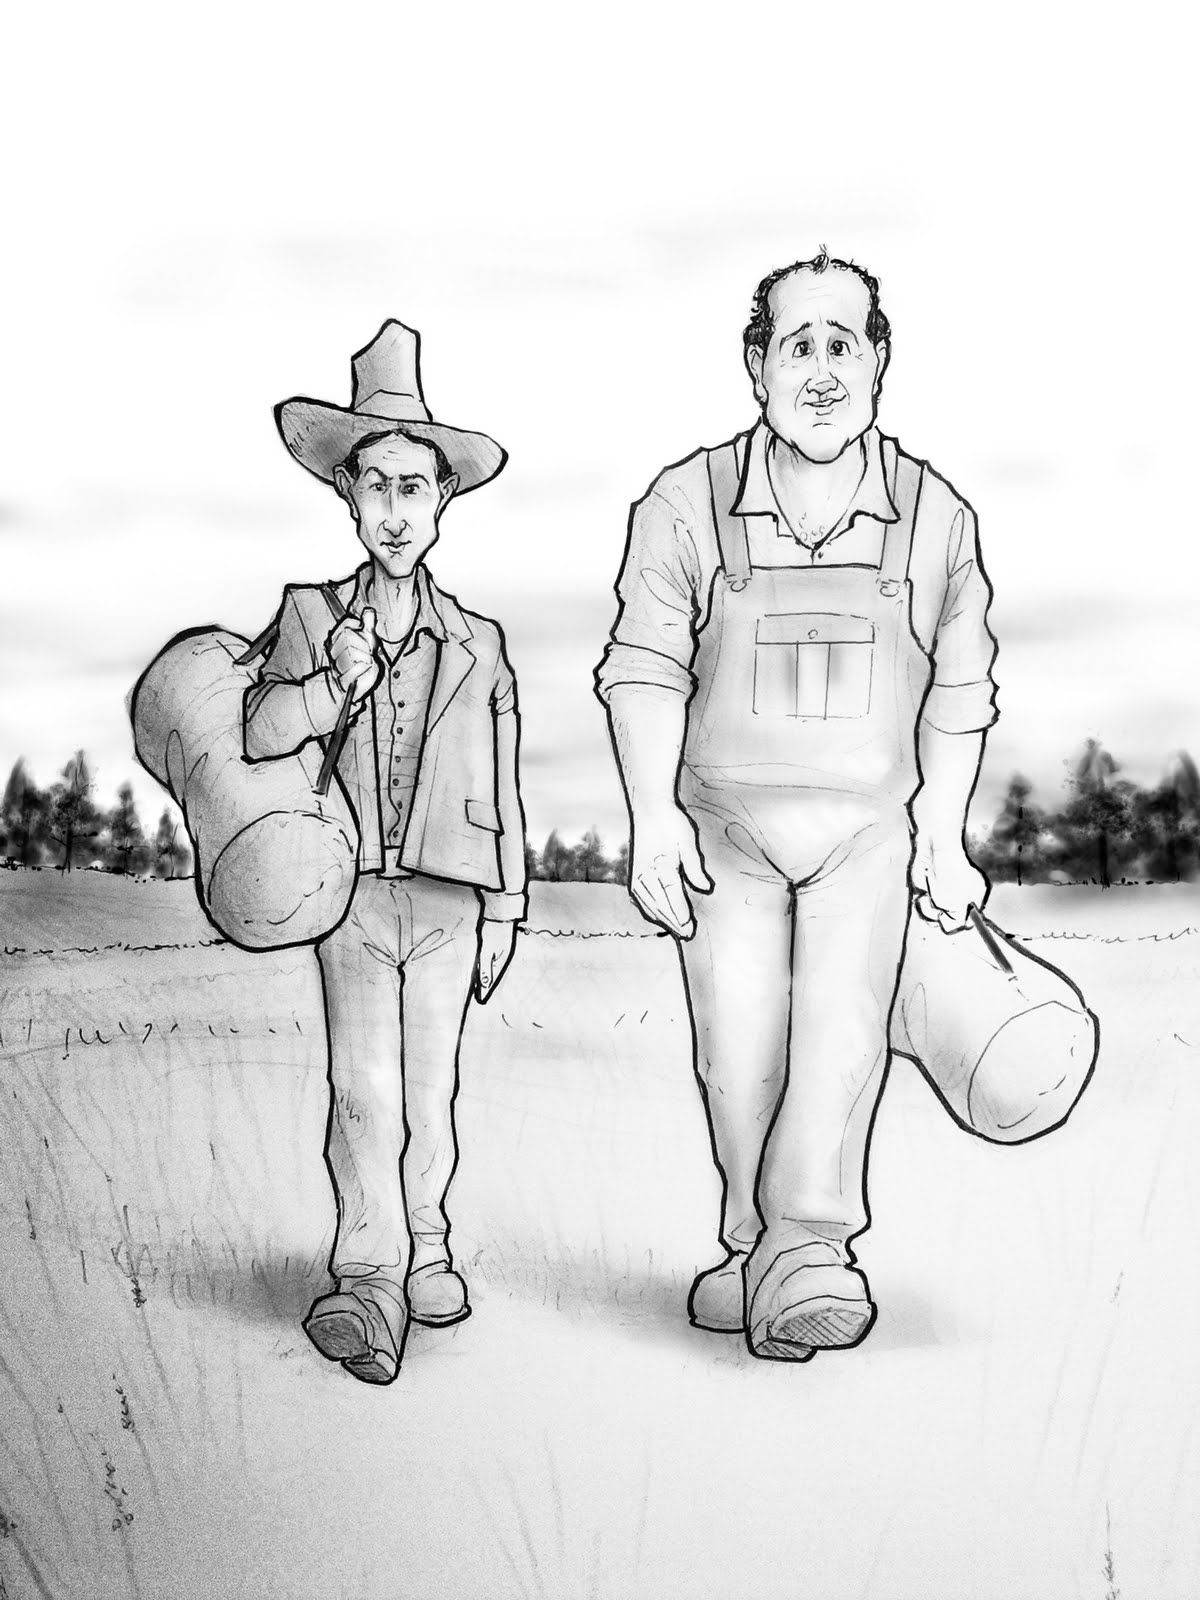 of mice and men essay discussing Of mice and men is a famous and controversial novel by john steinbeckthere have been many cases in which the novel was asked to be removed, sometimes successfully, from school curriculums due to profane language and dark themes such as murder, mental illness, and euthanasia.